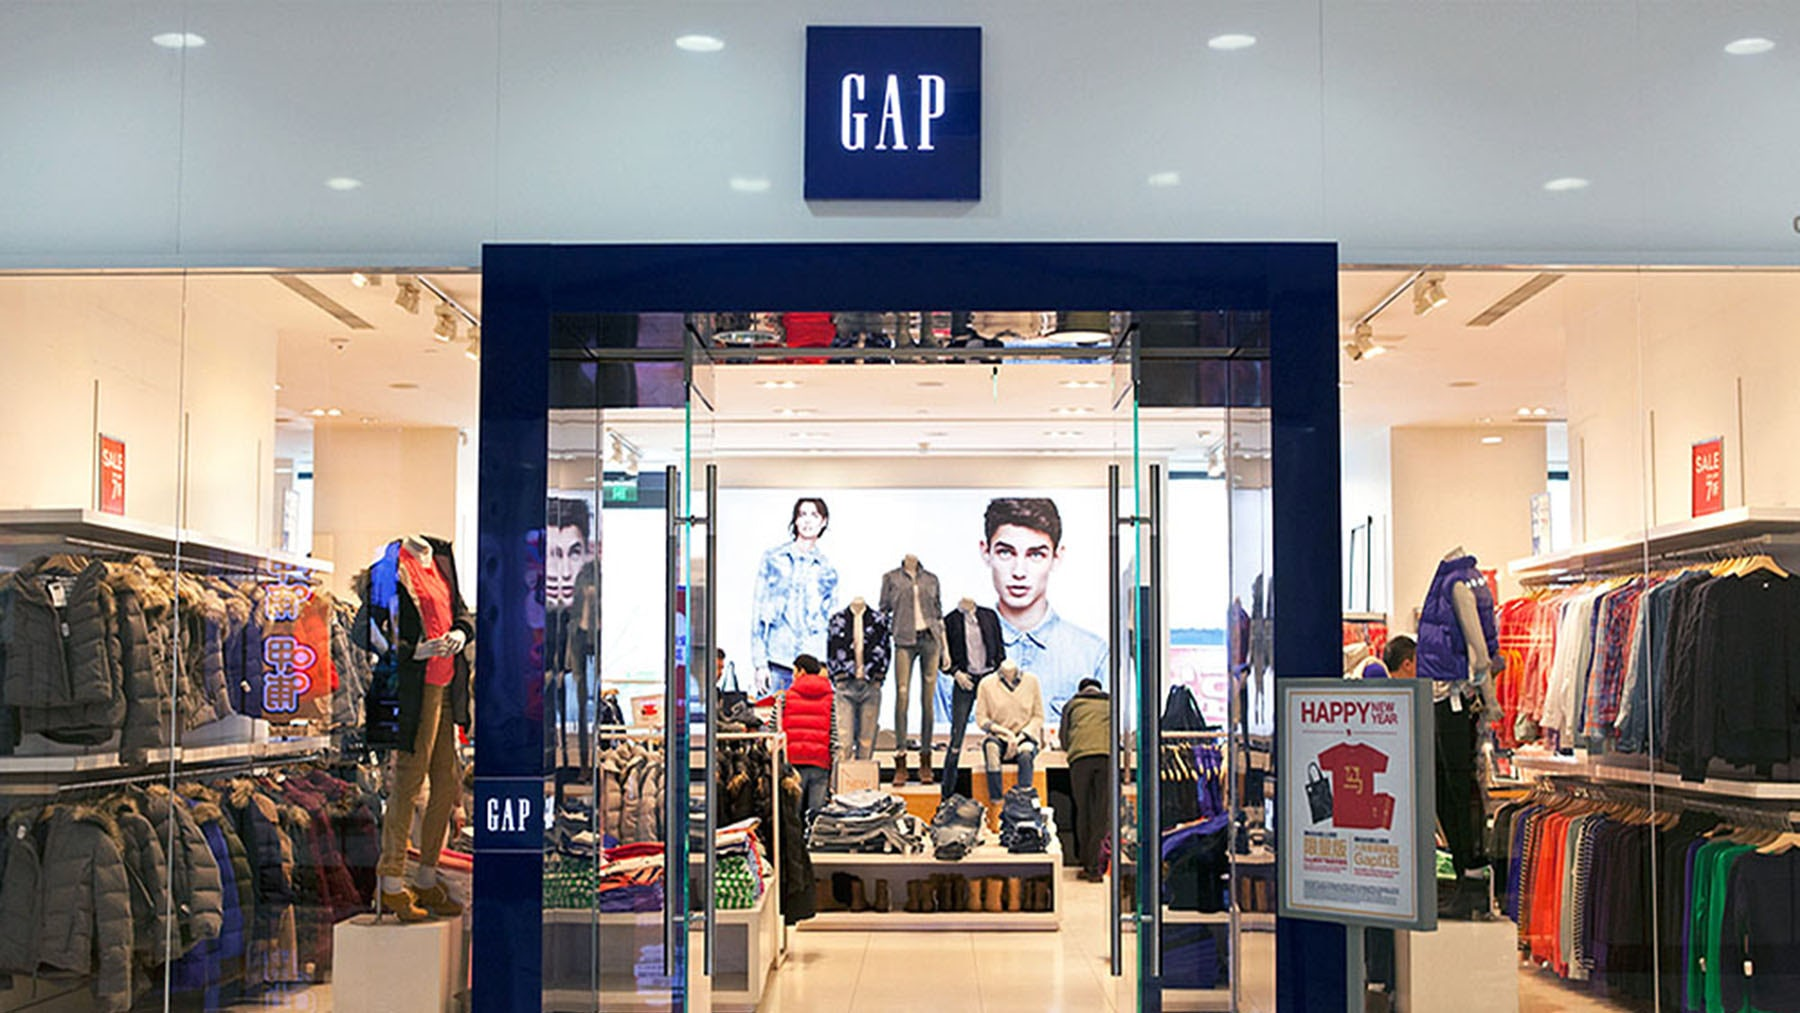 Article cover of Gap Sinks After CEO of Ailing Flagship Brand Leaves